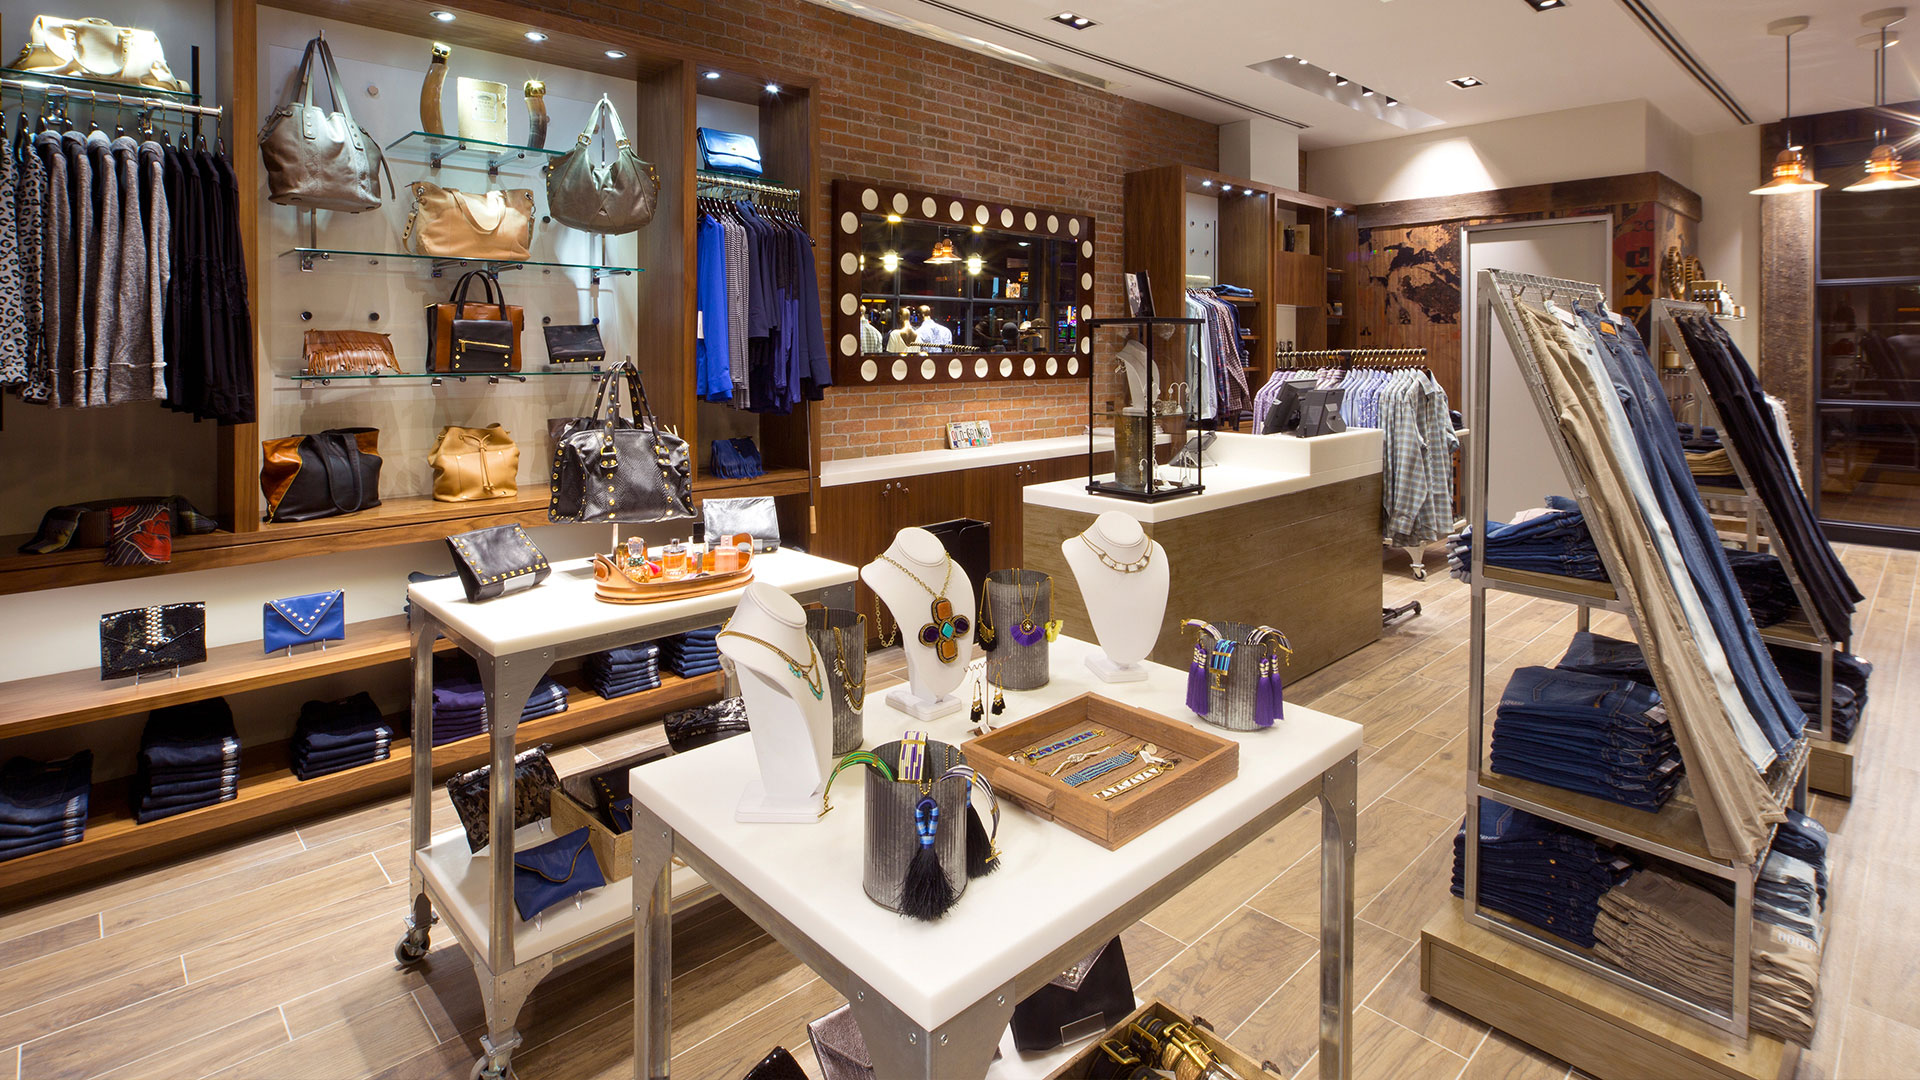 Commercial Retail Design Golden Nugget Lake Charles Landry's Boutique Riveted Floor Display